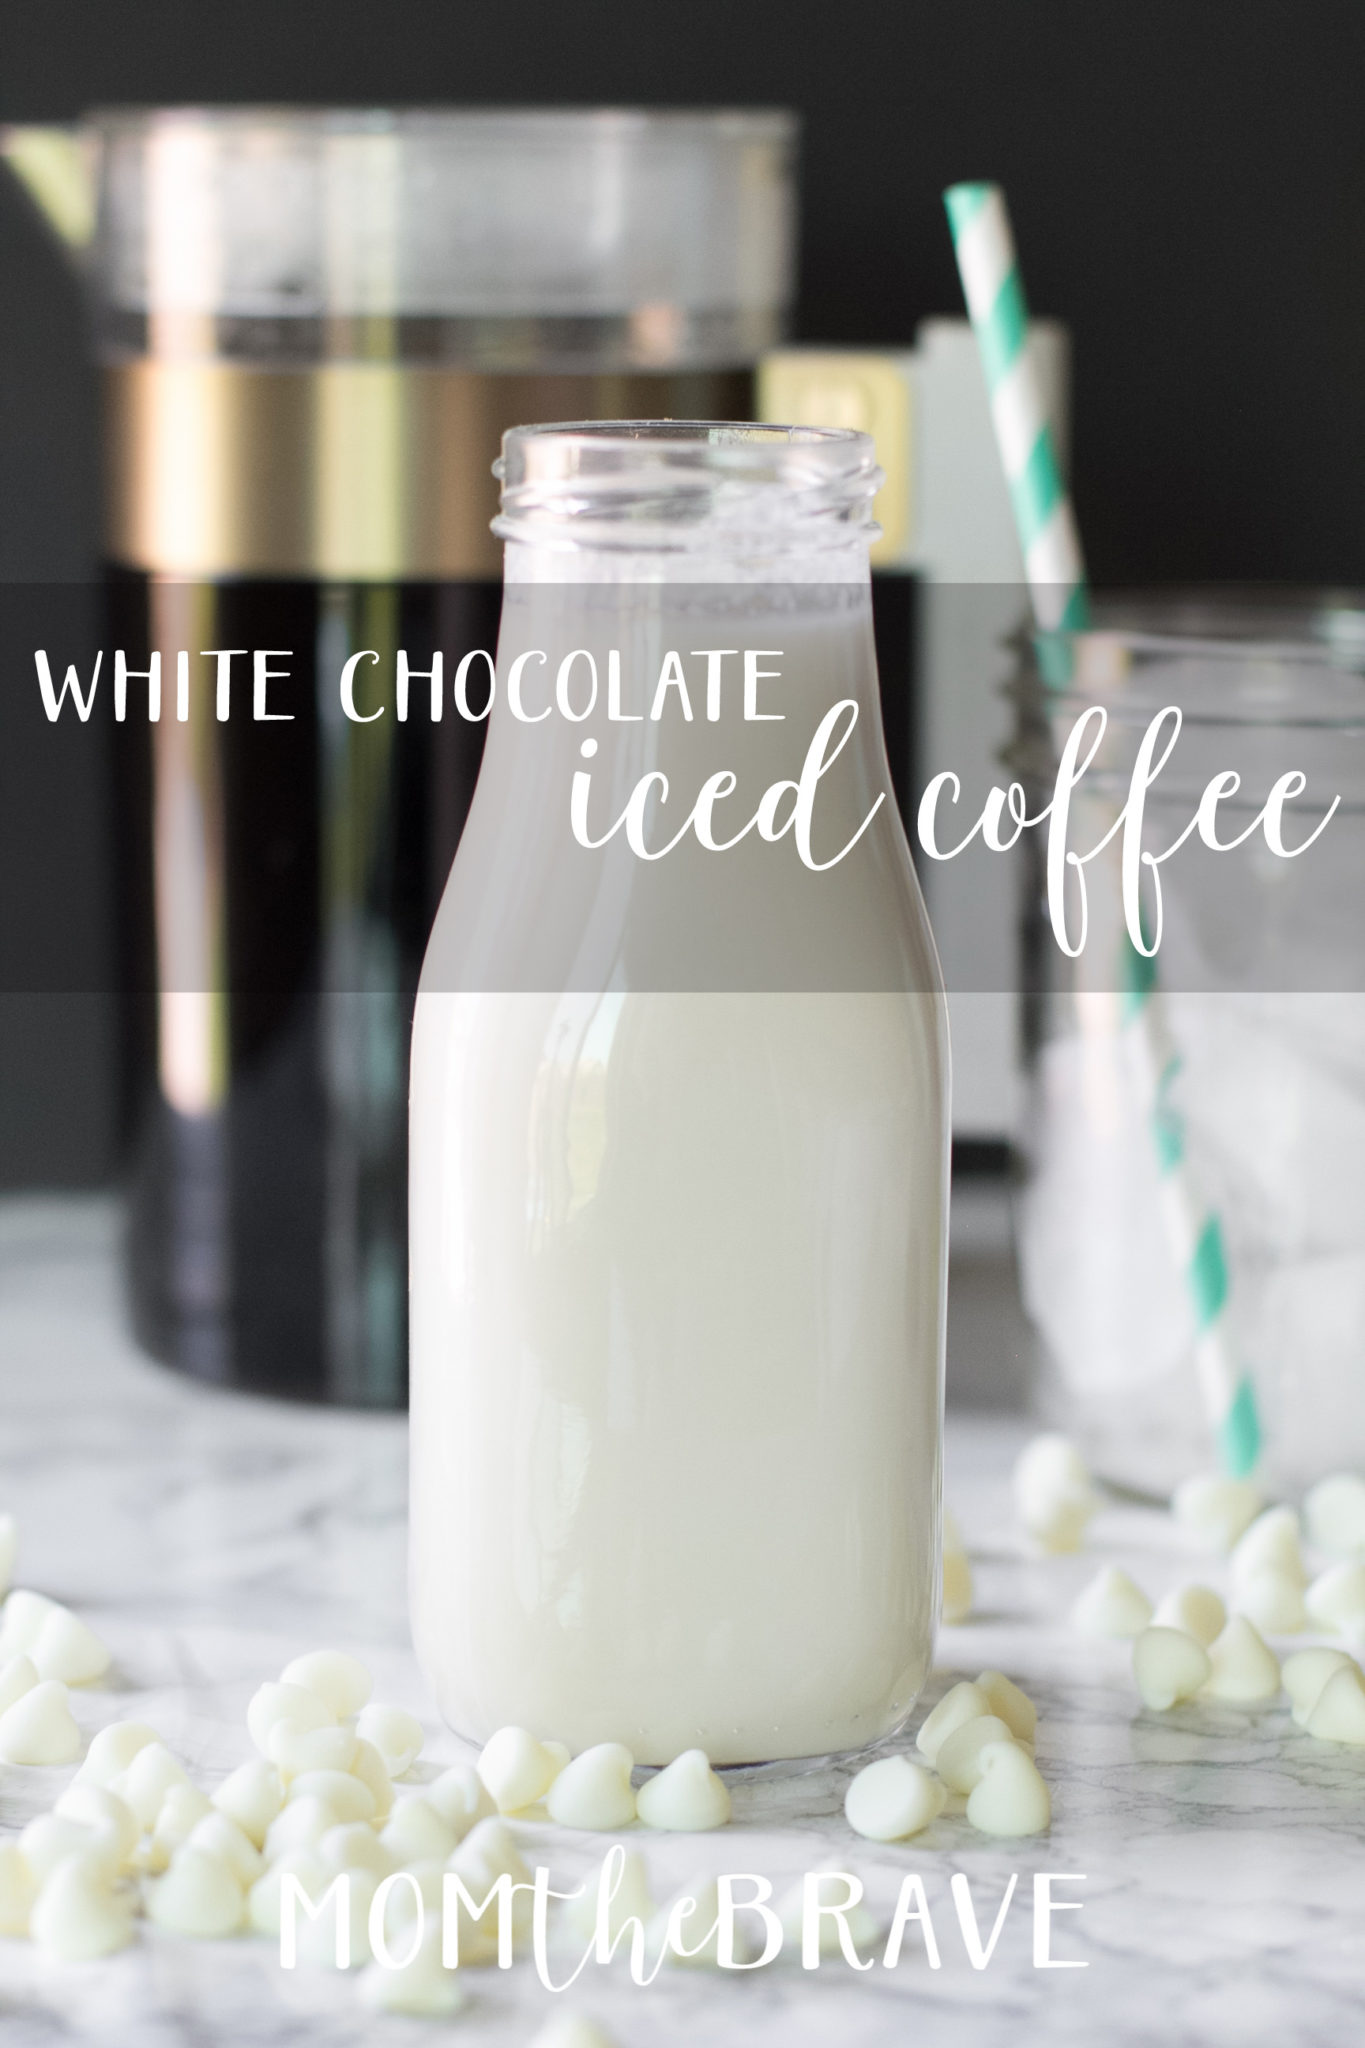 White Chocolate Iced Coffee